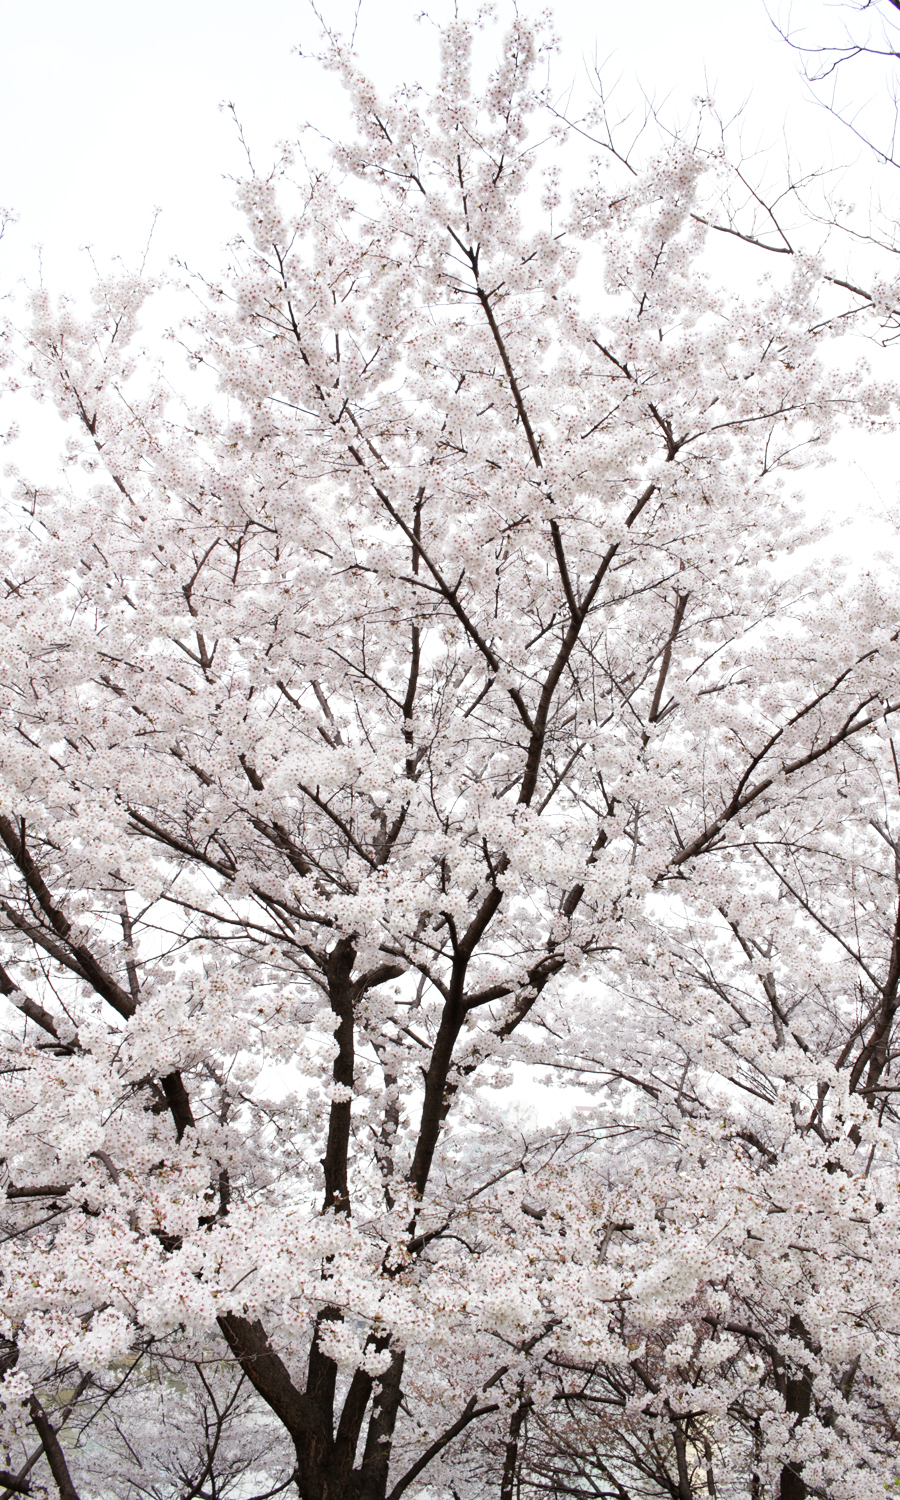 2015-04-09-korea-seoul-jamshil-seokchon-lake-cherry-blossoms-12